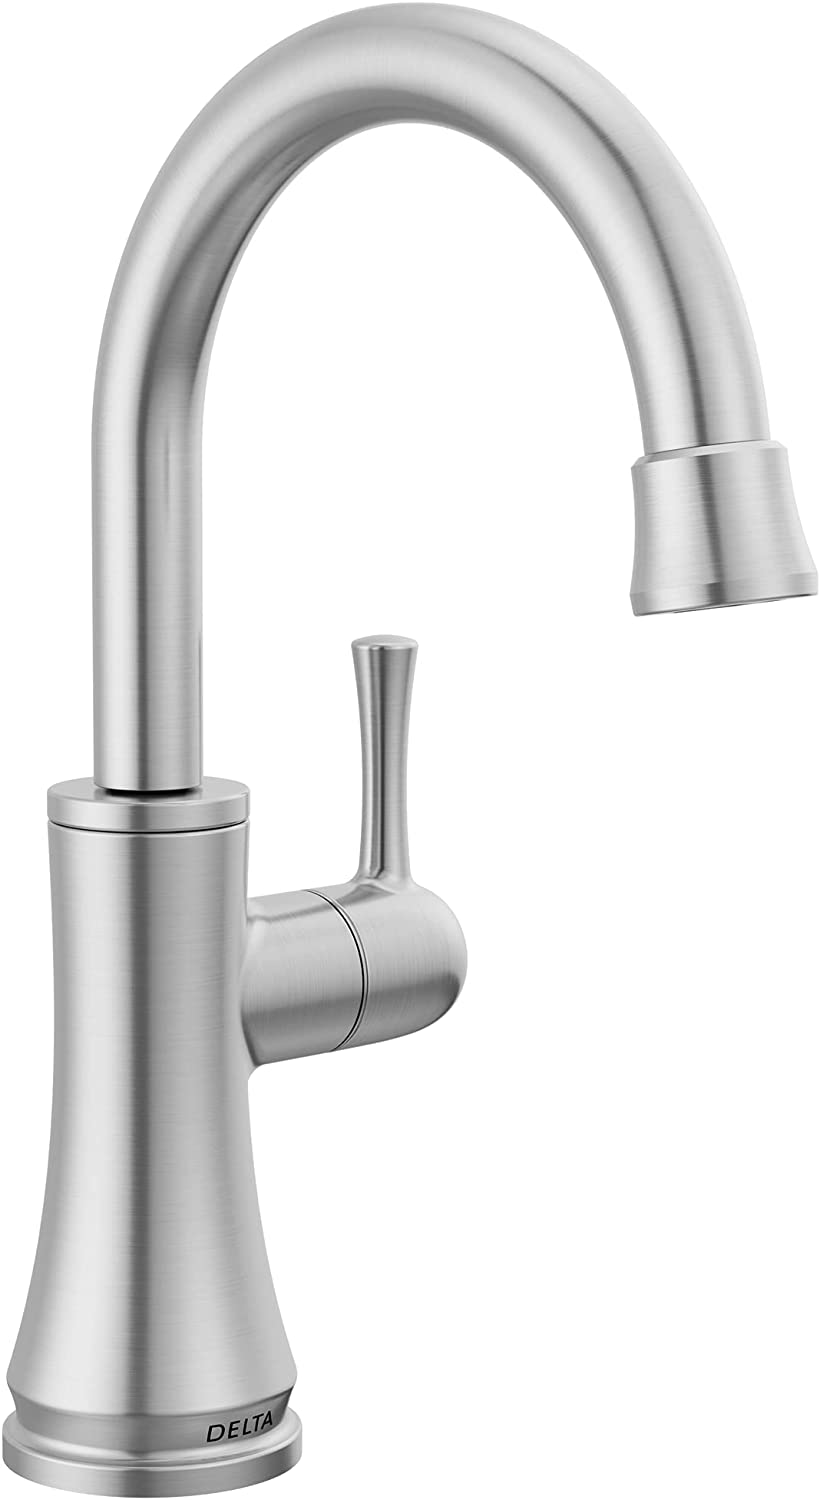 Delta Faucet 1920-AR-DST Traditional Beverage Faucet, Arctic Stainless